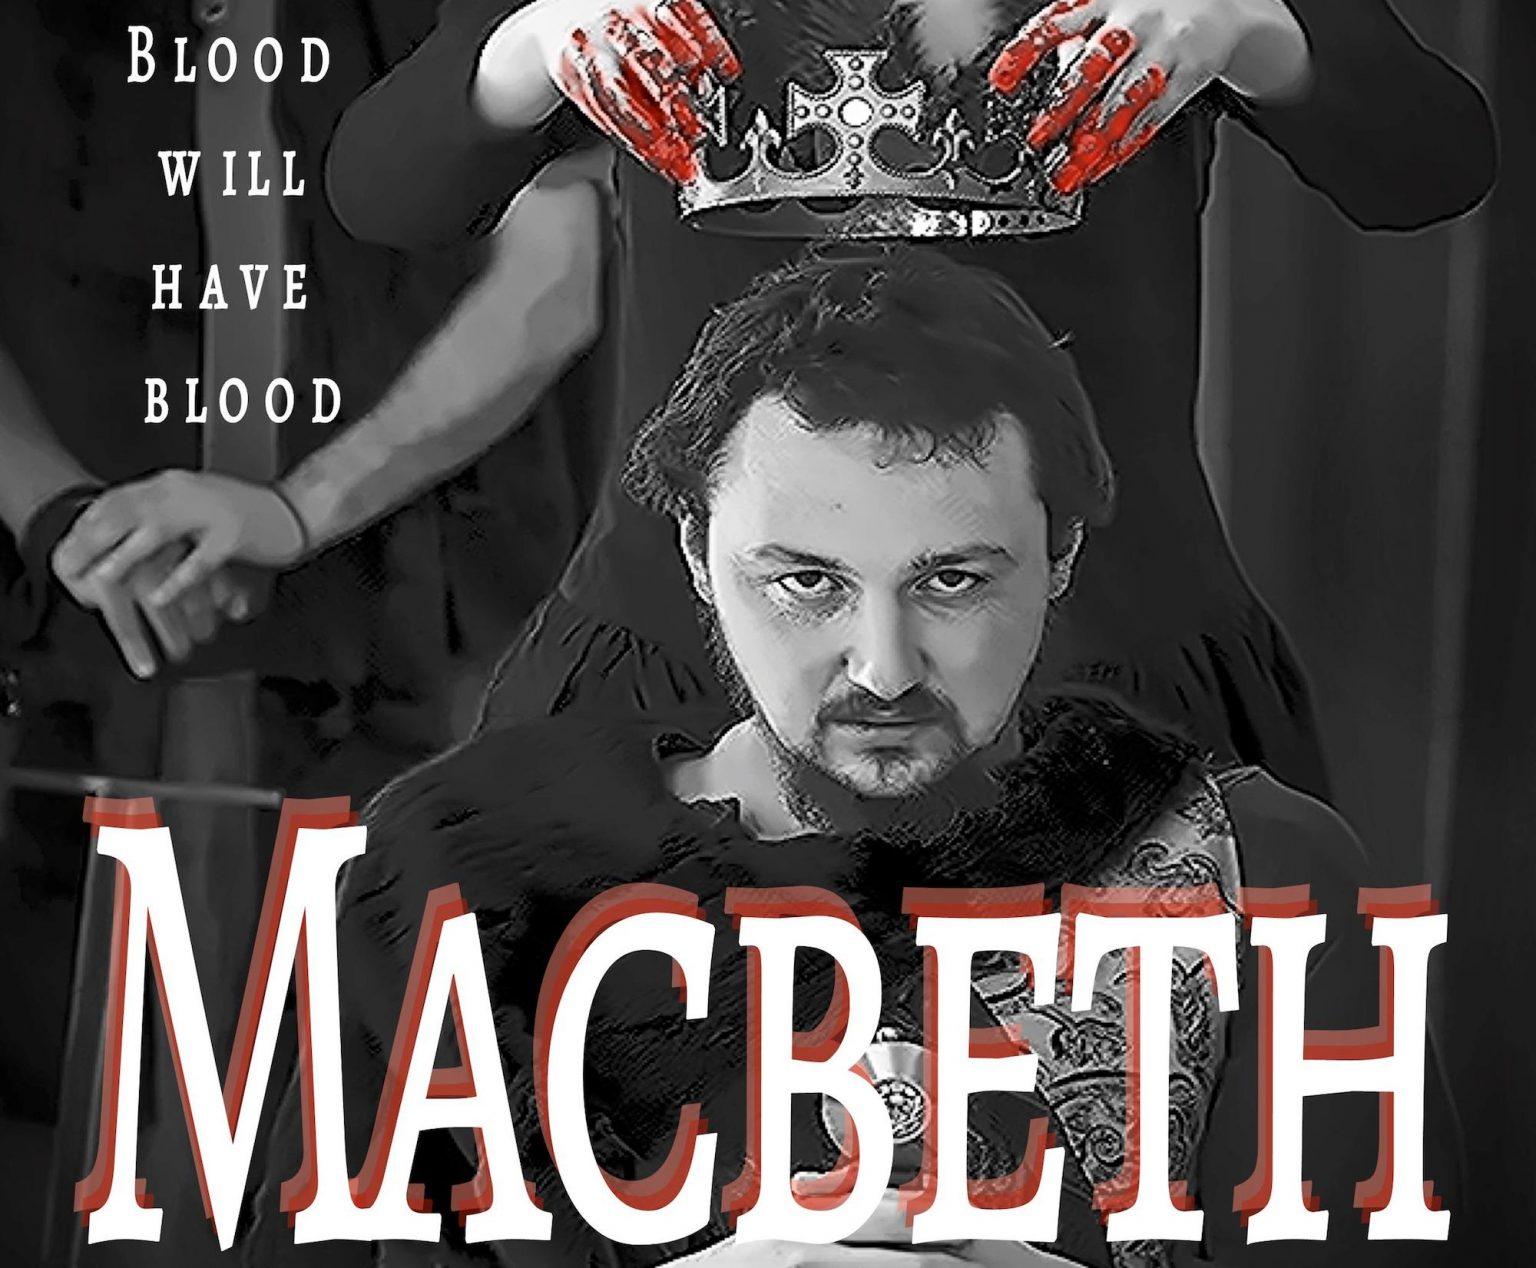 Macbeth - Inn Theatre